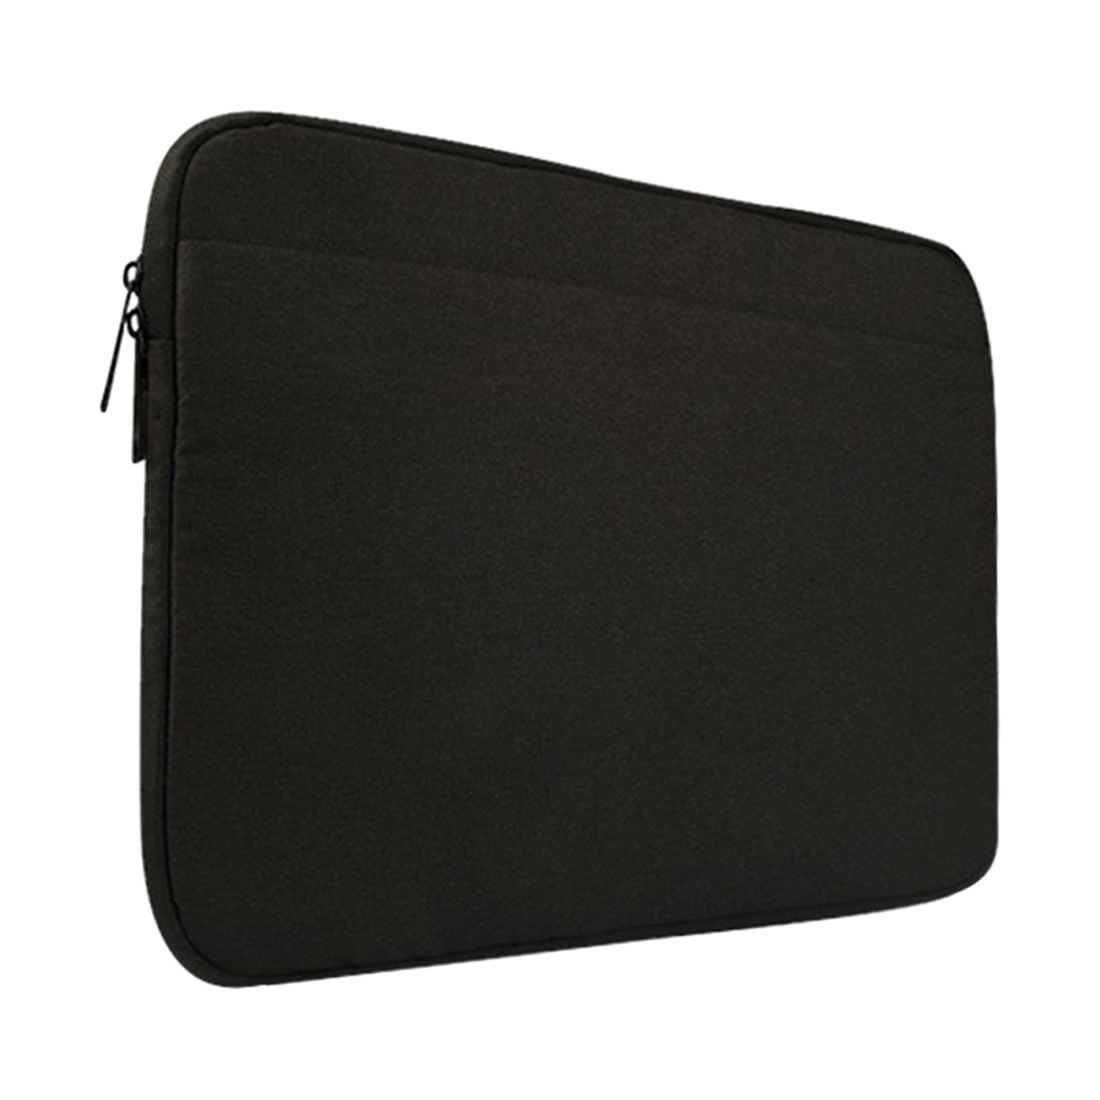 Image 5 - Laptop Sleeve bag for Dell Asus Lenovo HP Acer Computer 11 12 13 14 15 inch for Macbook Air Pro Notebook 15.6 Sleeve Case Simple-in Laptop Bags & Cases from Computer & Office